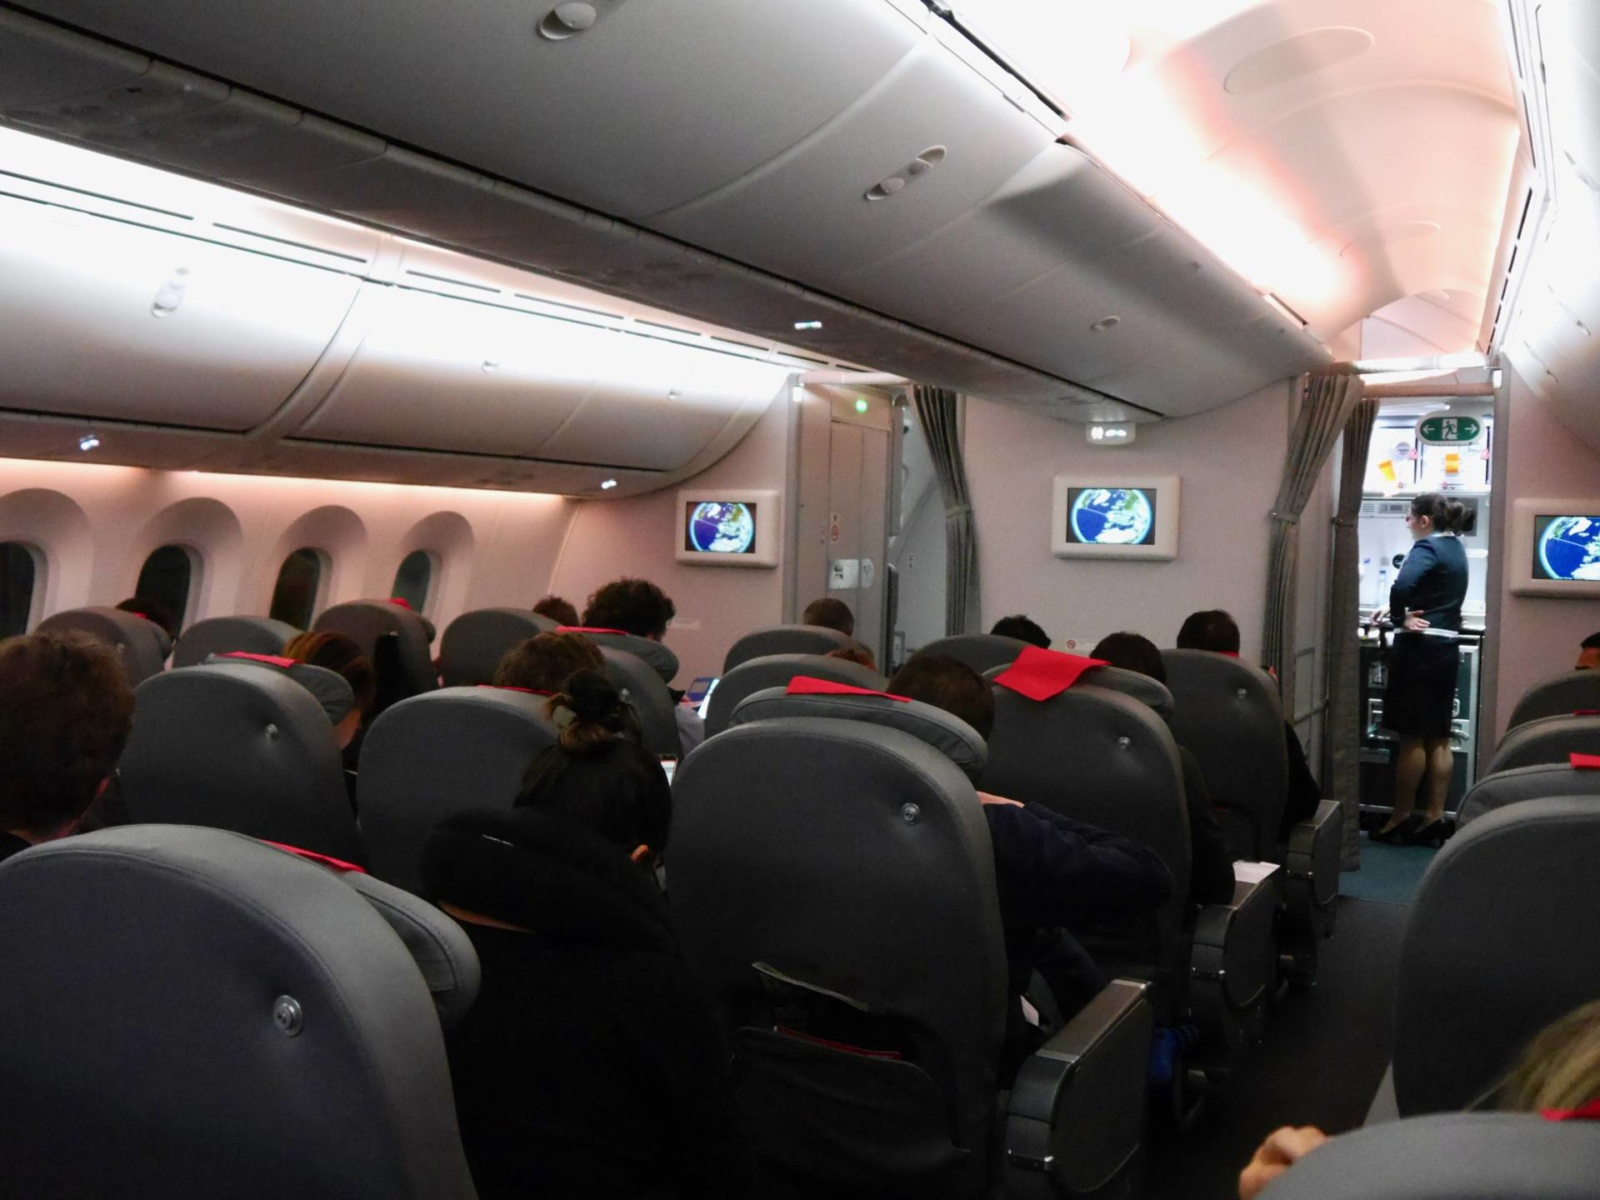 Exceptional If Youu0027re Travelling For A Special Occasion Or Simply Want To Enjoy A Bit  More Comfort In The Sky, Norwegian Airu0027s Premium Class Offers A More  Affordable ...